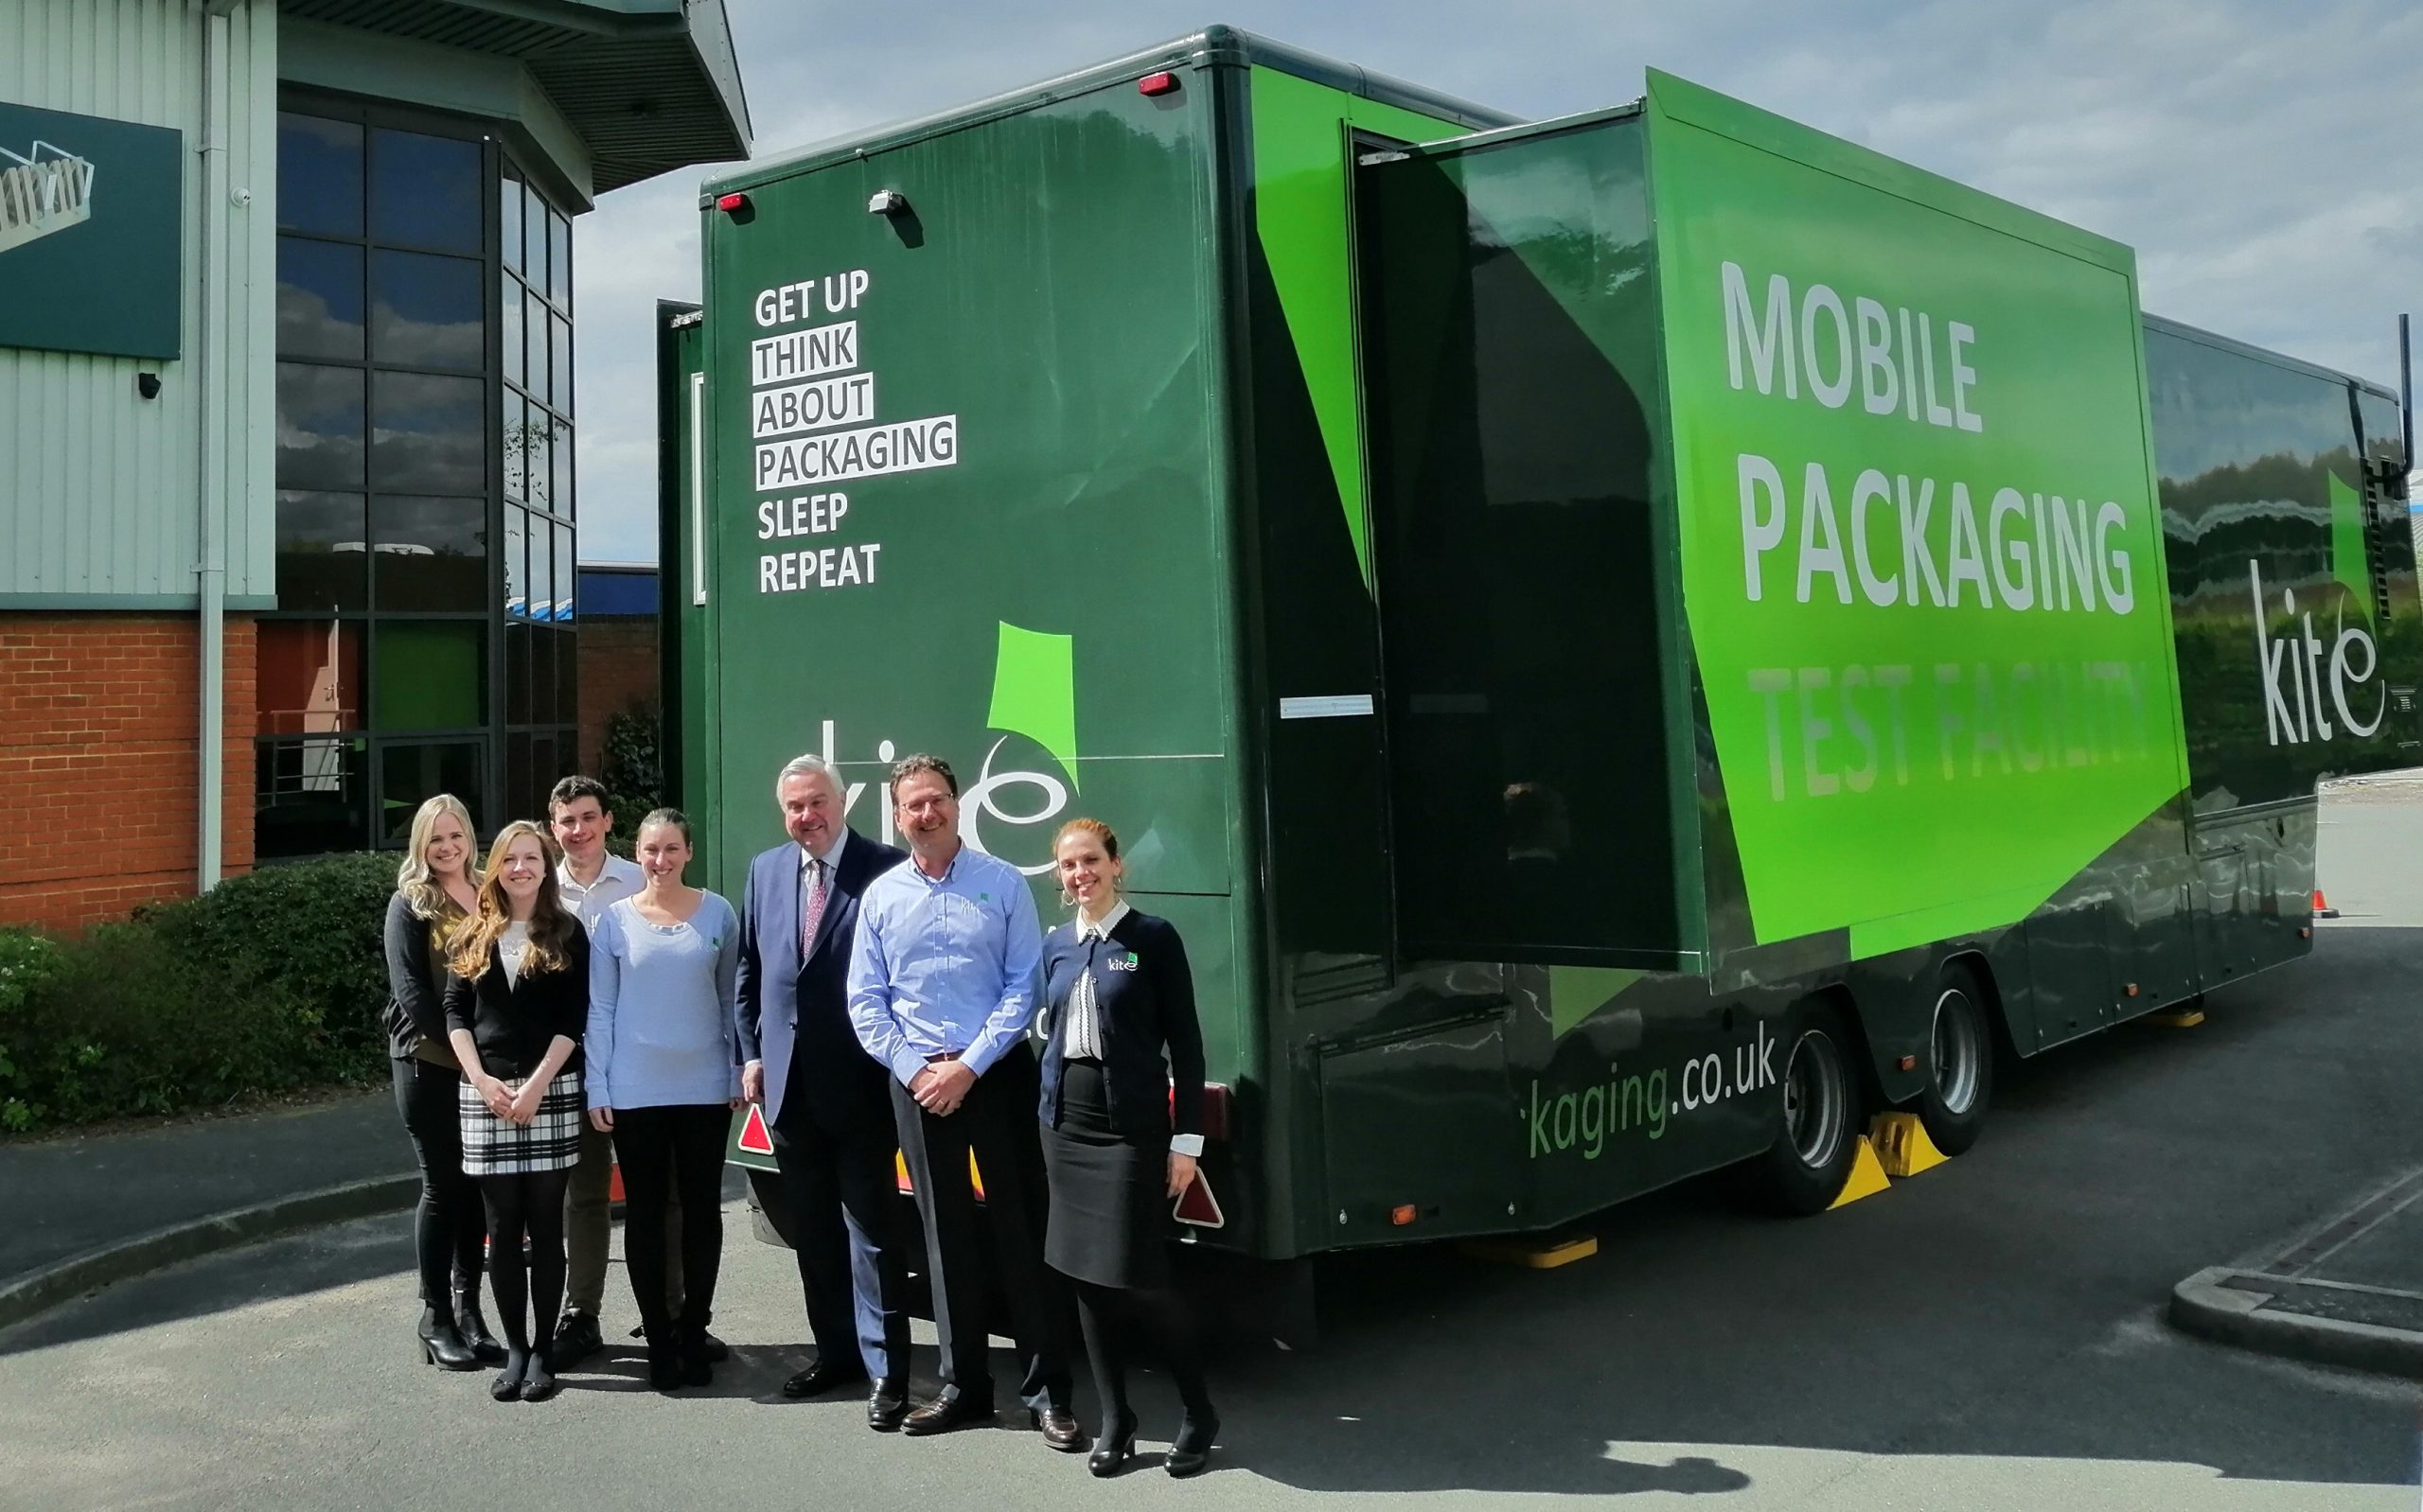 Letchworth's Kite Packaging welcomes Sir Oliver Heald MP as it continues with 120 tonne plastic reduction challenge